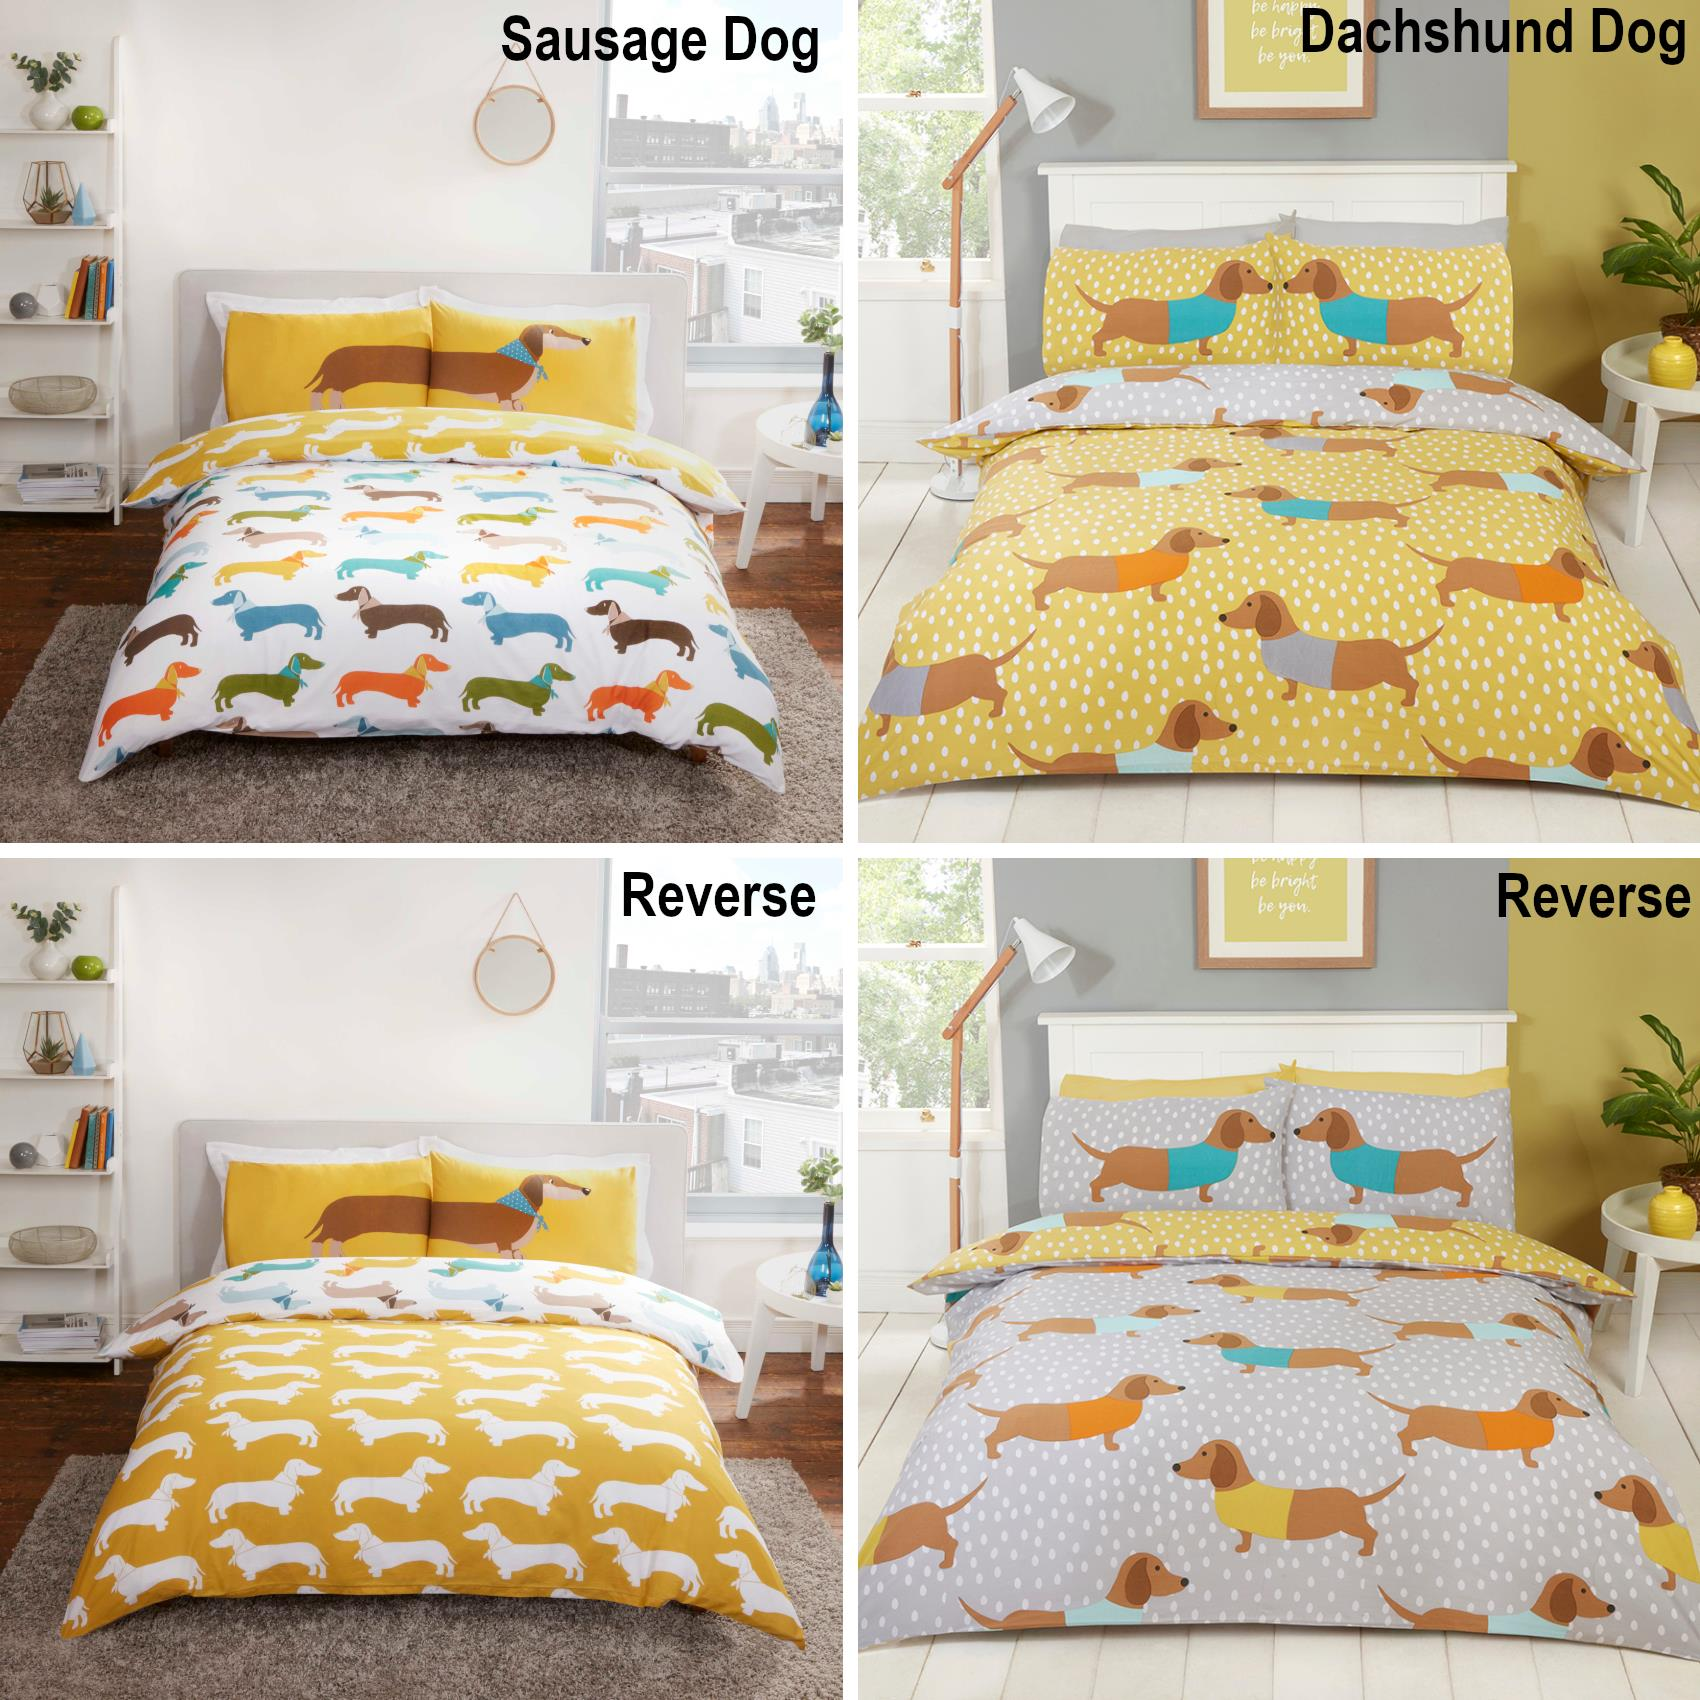 British Designed Sausage Dog Reversible Duvet Cover Set